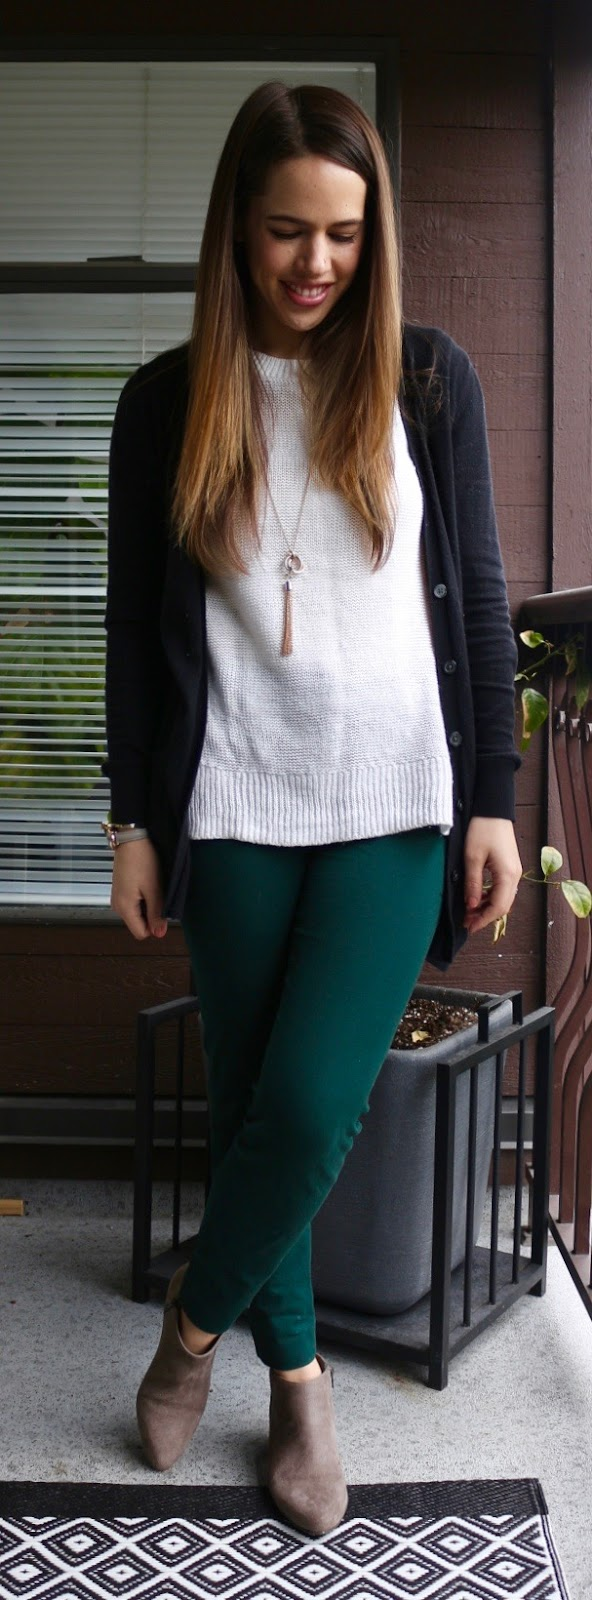 Jules in Flats - St. Patrick's Day Outfit